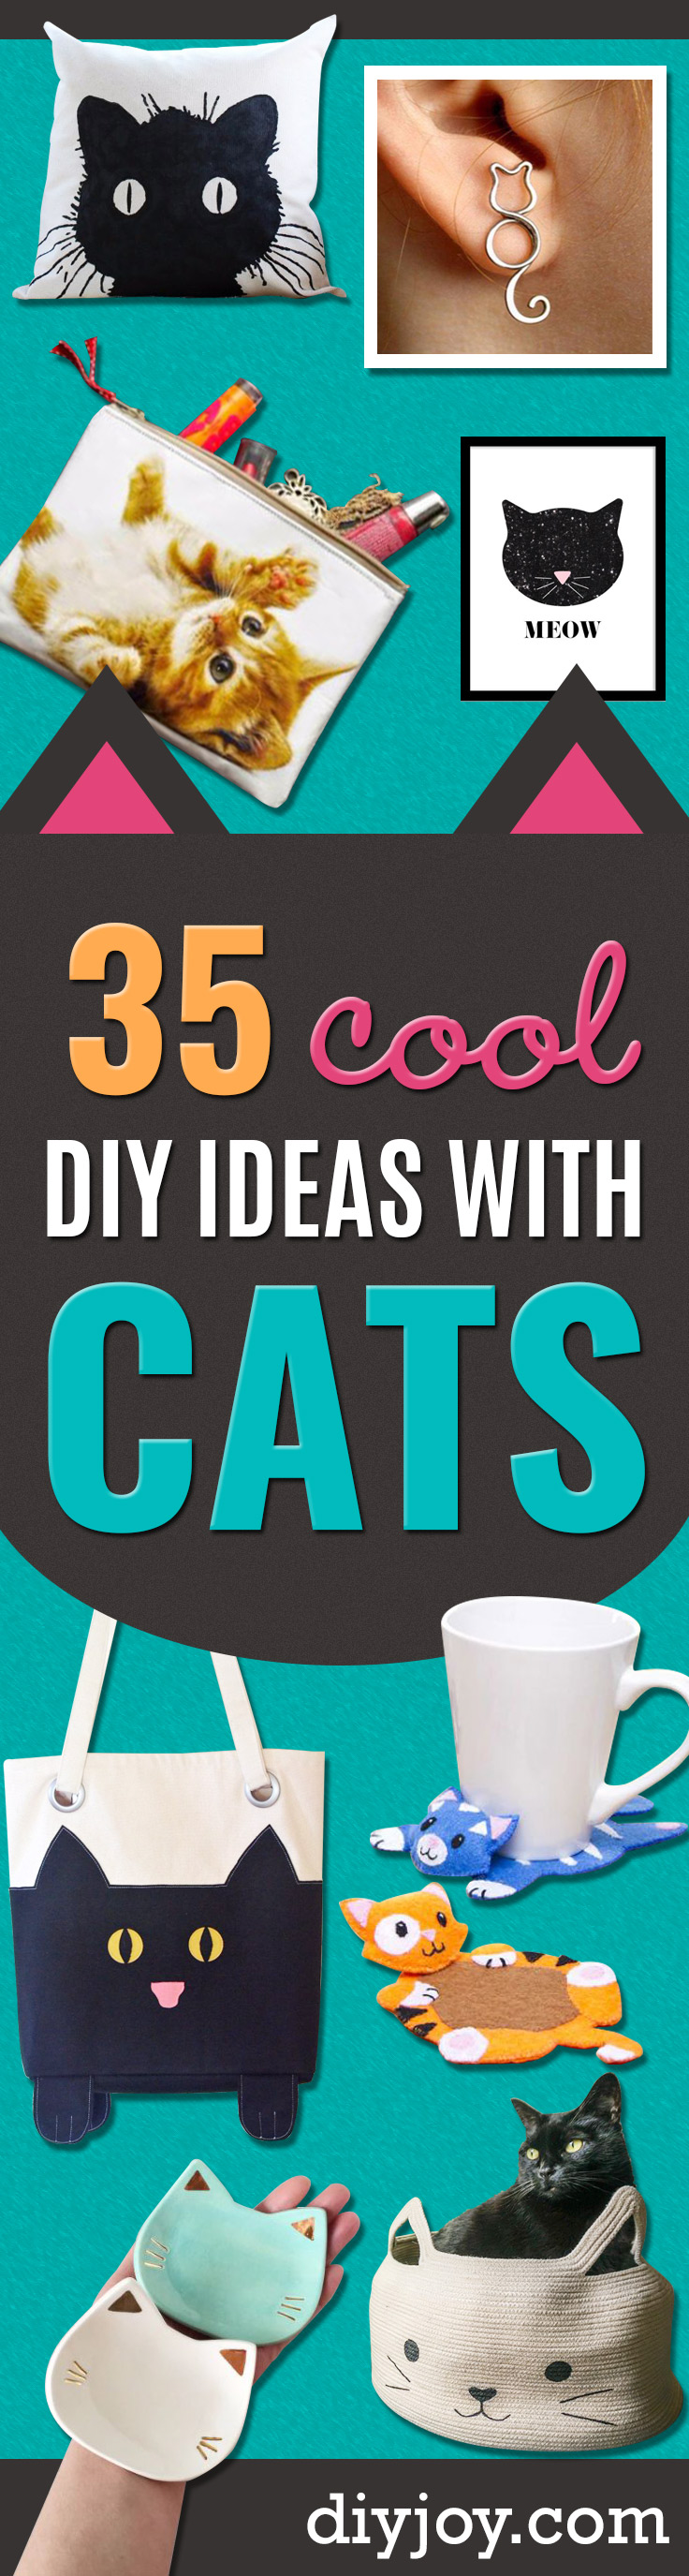 DIY Ideas With Cats - Cute and Easy DIY Projects for Cat Lovers - Wall and Home Decor Projects, Things To Make and Sell on Etsy - Quick Gifts to Make for Friends Who Have Kittens and Kitties - Homemade No Sew Projects- Fun Jewelry, Cool Clothes, Pillows and Kitty Accessories http://diyjoy.com/diy-ideas-cats